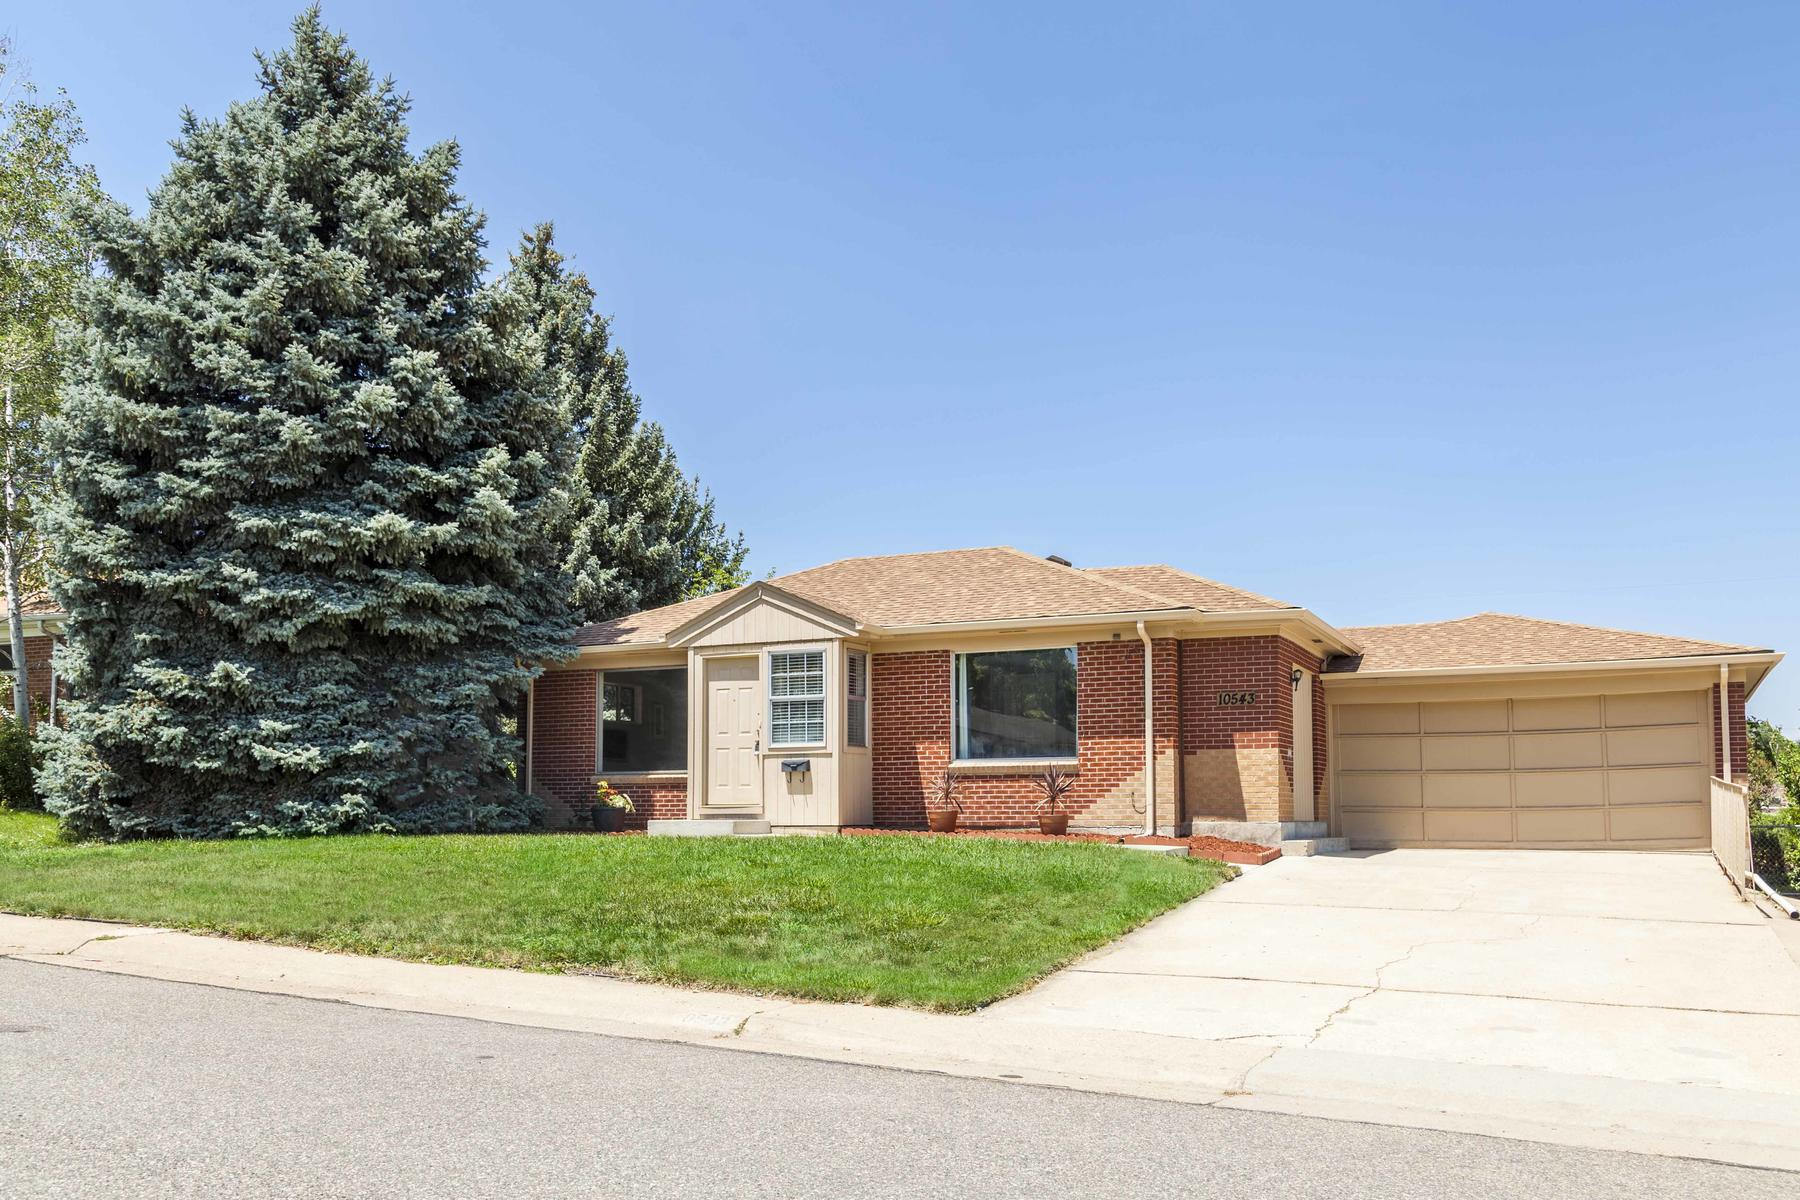 Single Family Home for Active at This Is The Perfect Home! 10543 Washington Way Northglenn, Colorado 80233 United States